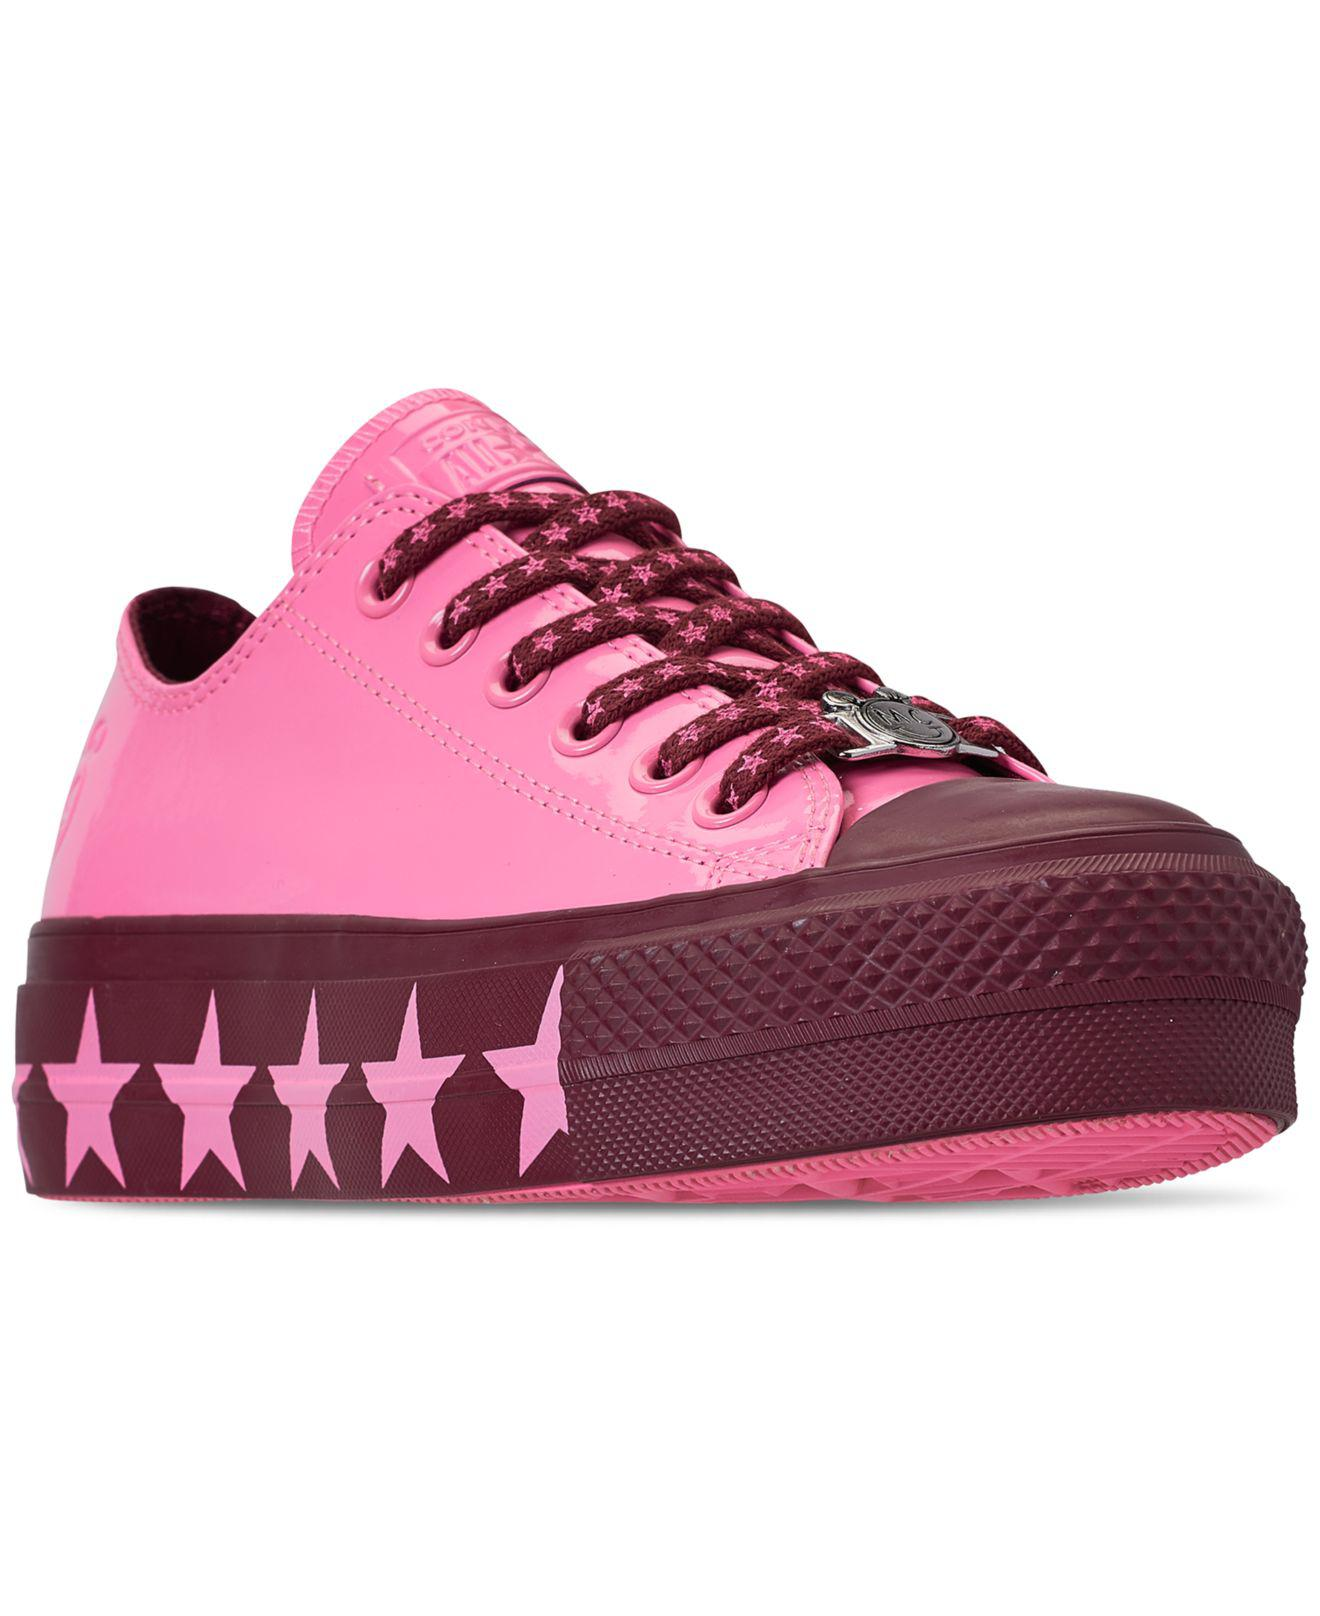 ea8e5b00375 Converse. Women s Pink Chuck Taylor All Star X Miley Cyrus Ox Lift Casual  Sneakers ...